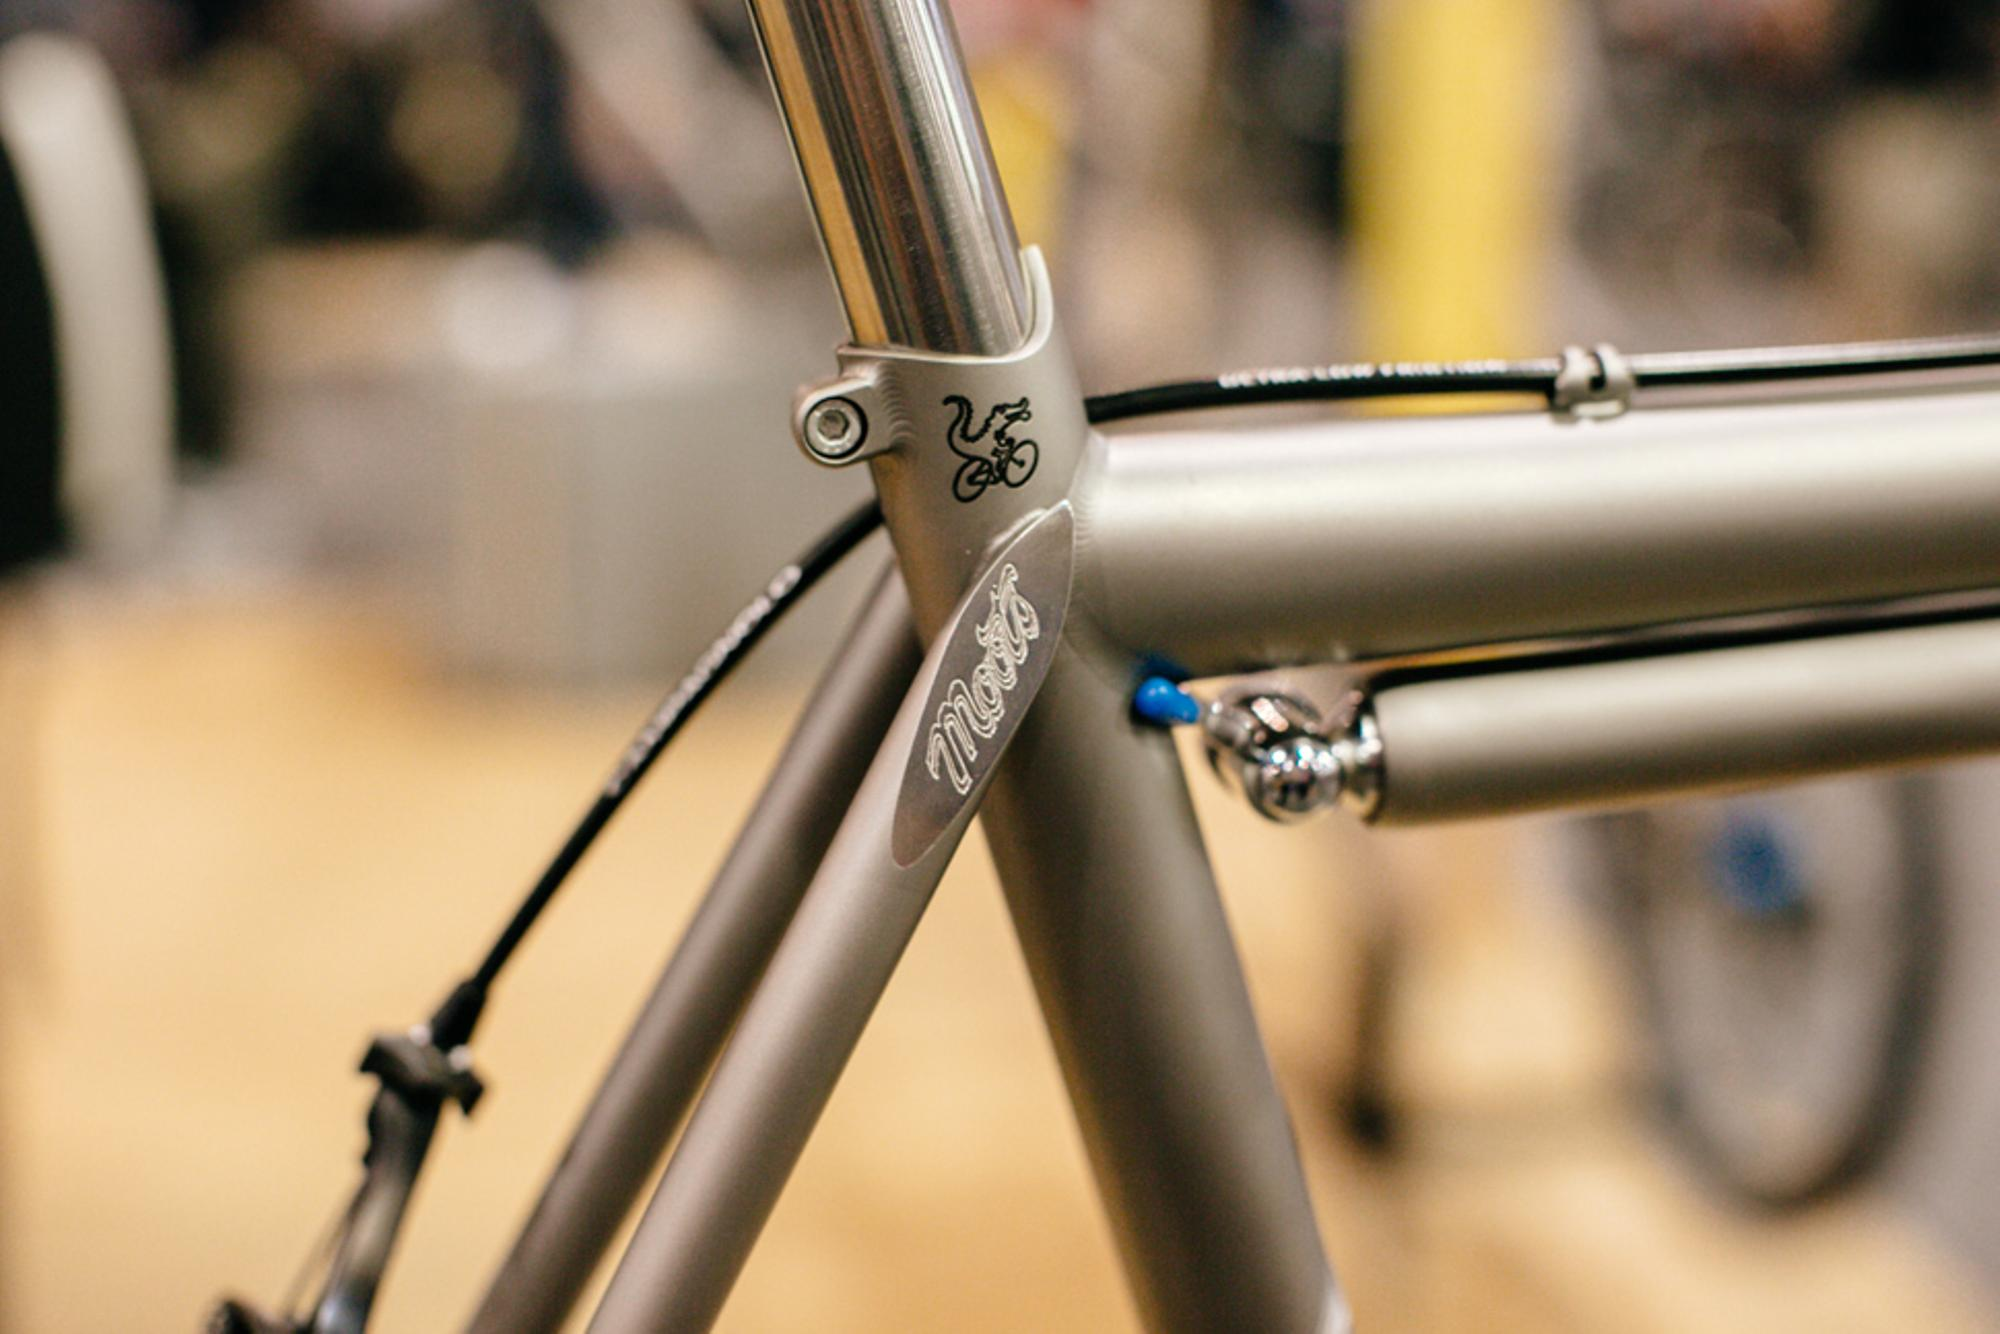 ... and I could finally check out this Vecchio's Moots!